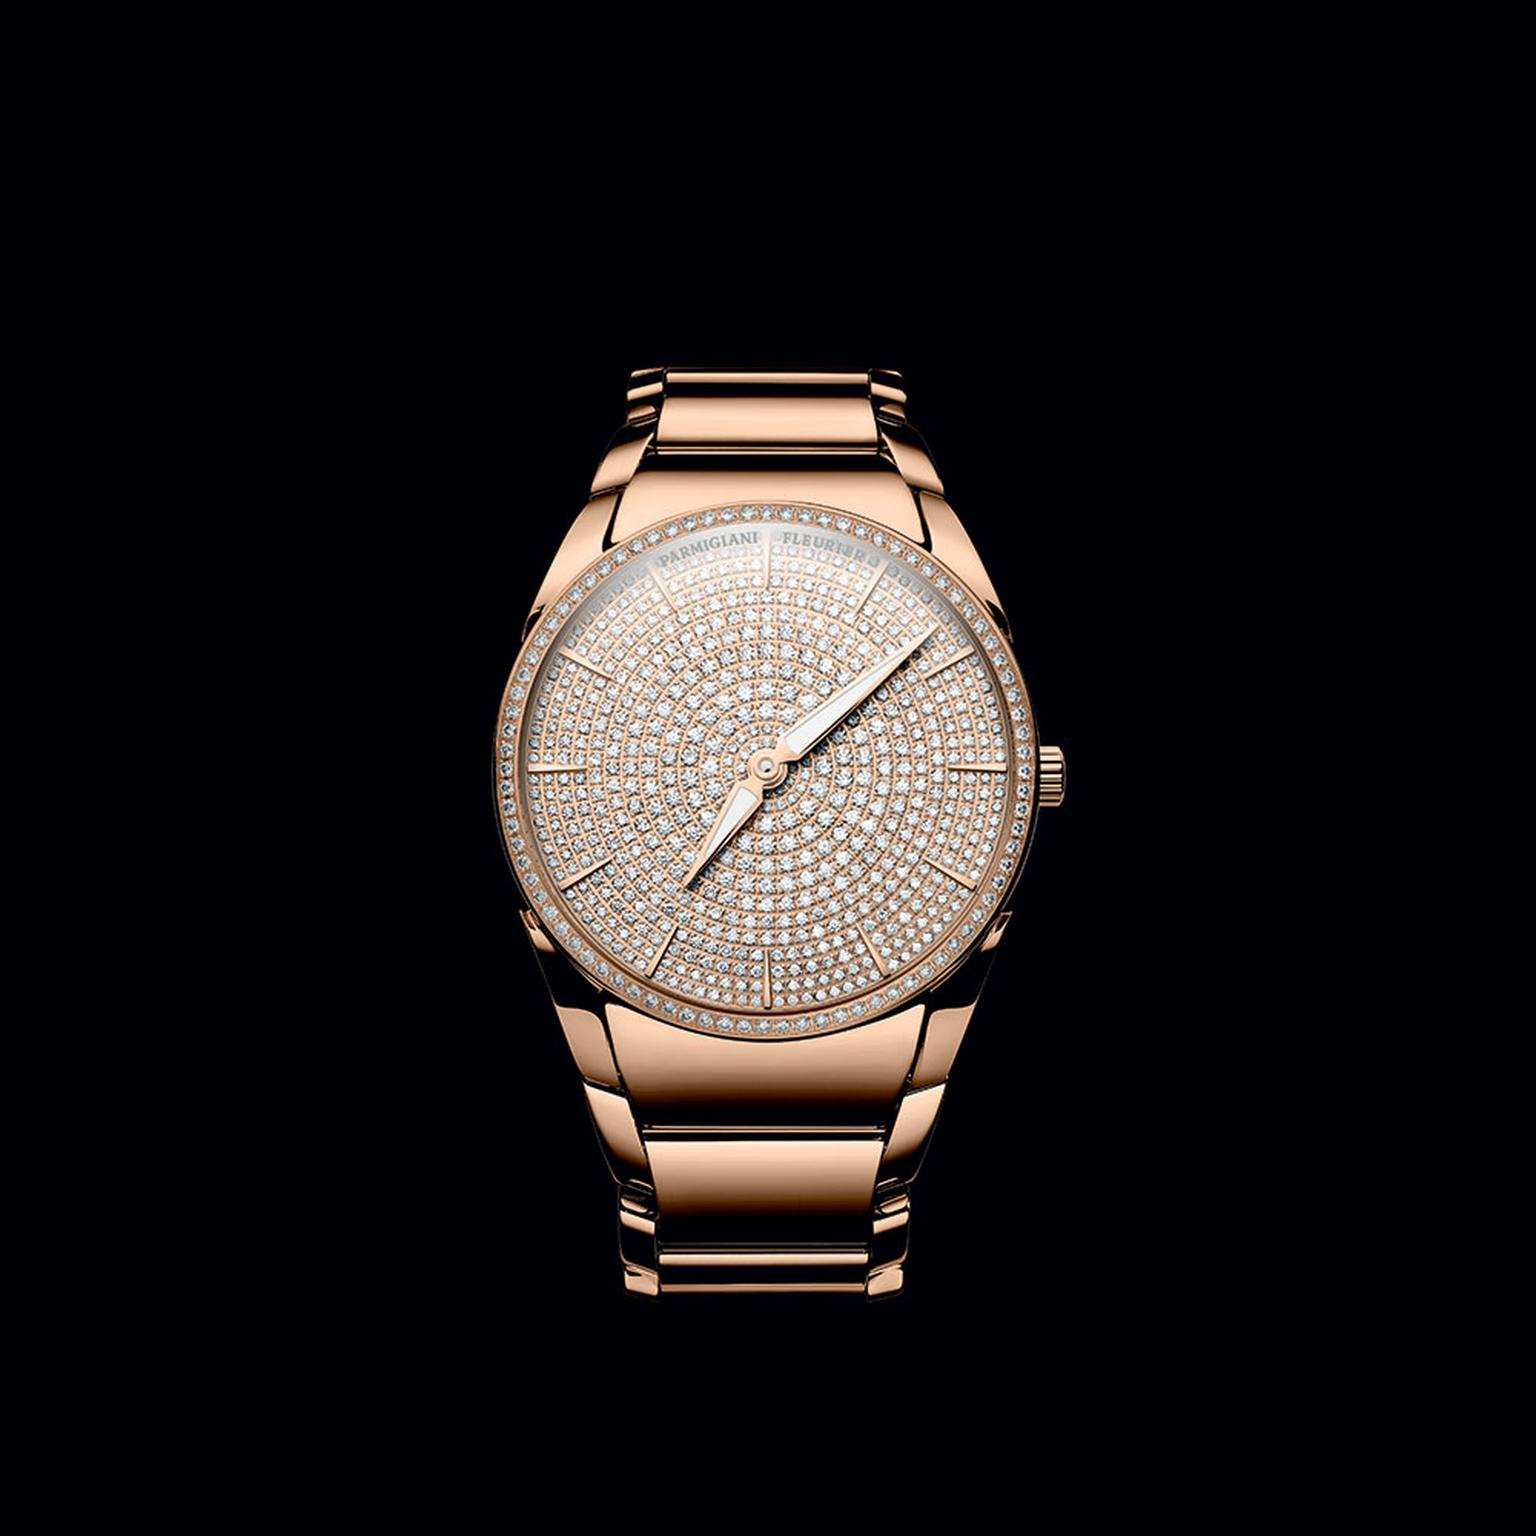 Parmigiani Tonda Clarity diamond watch